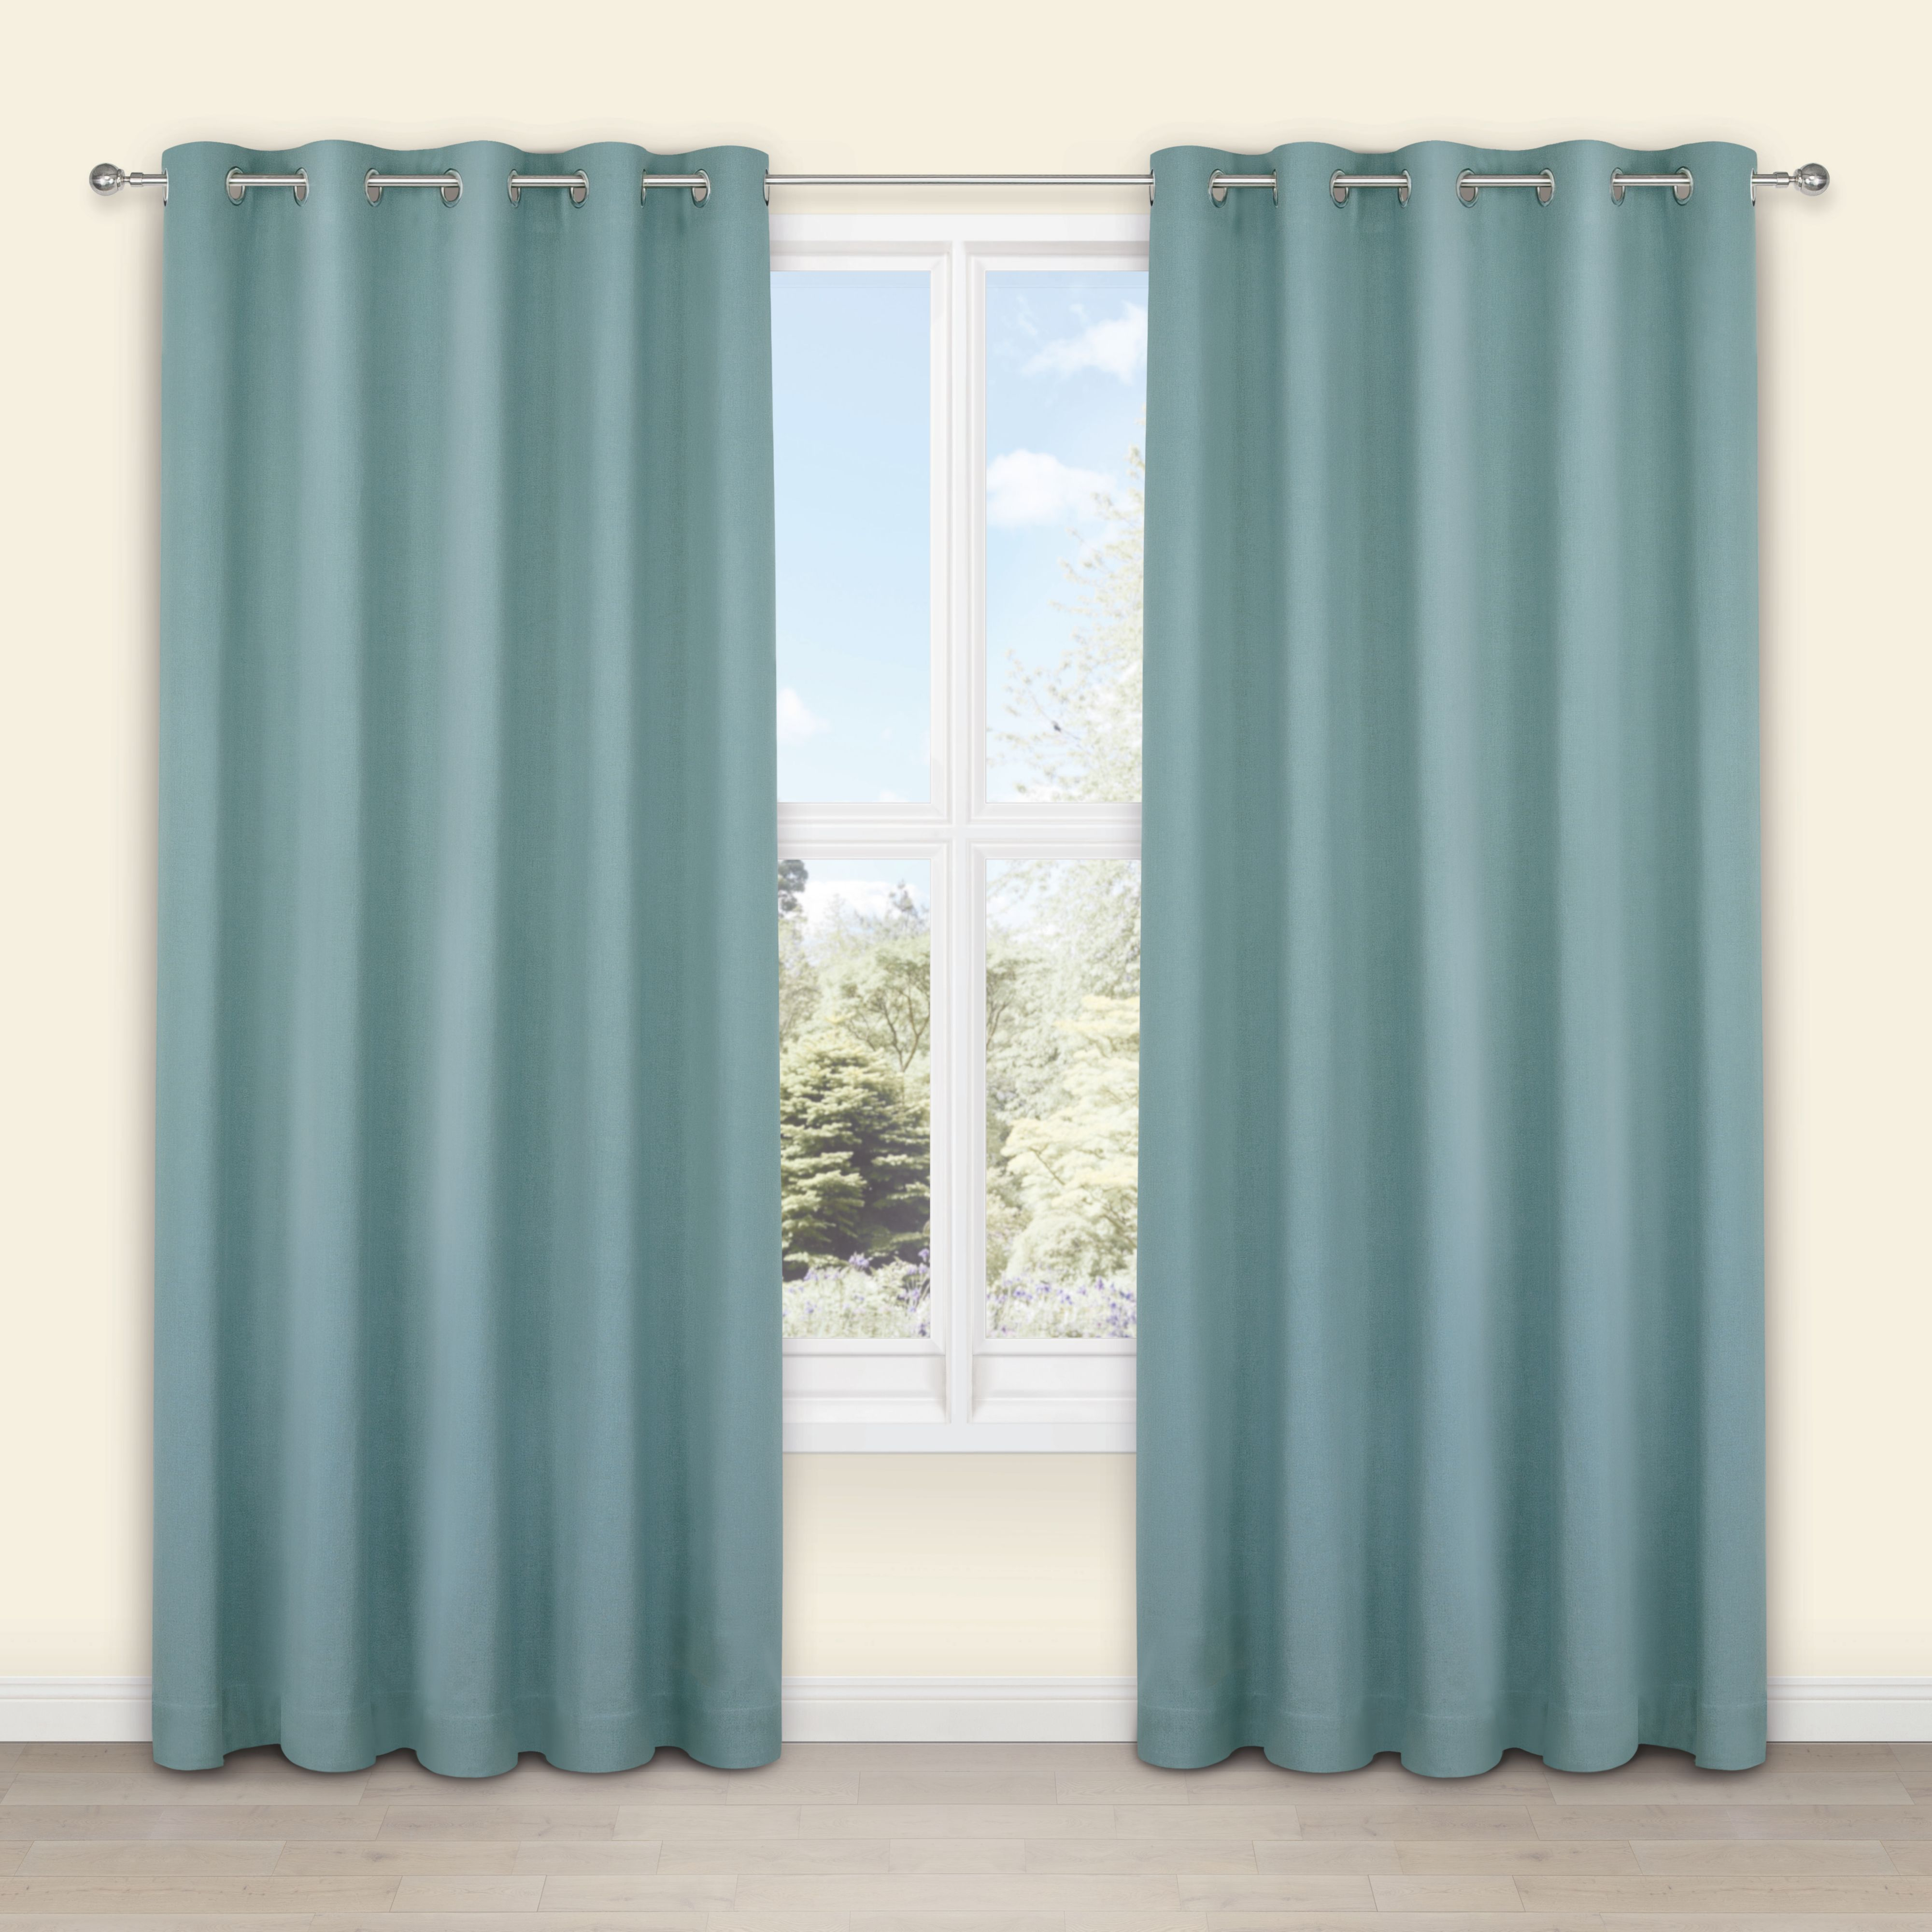 Salla Duck Egg Plain Woven Eyelet Lined Curtains (W)228 cm (L)228 ...